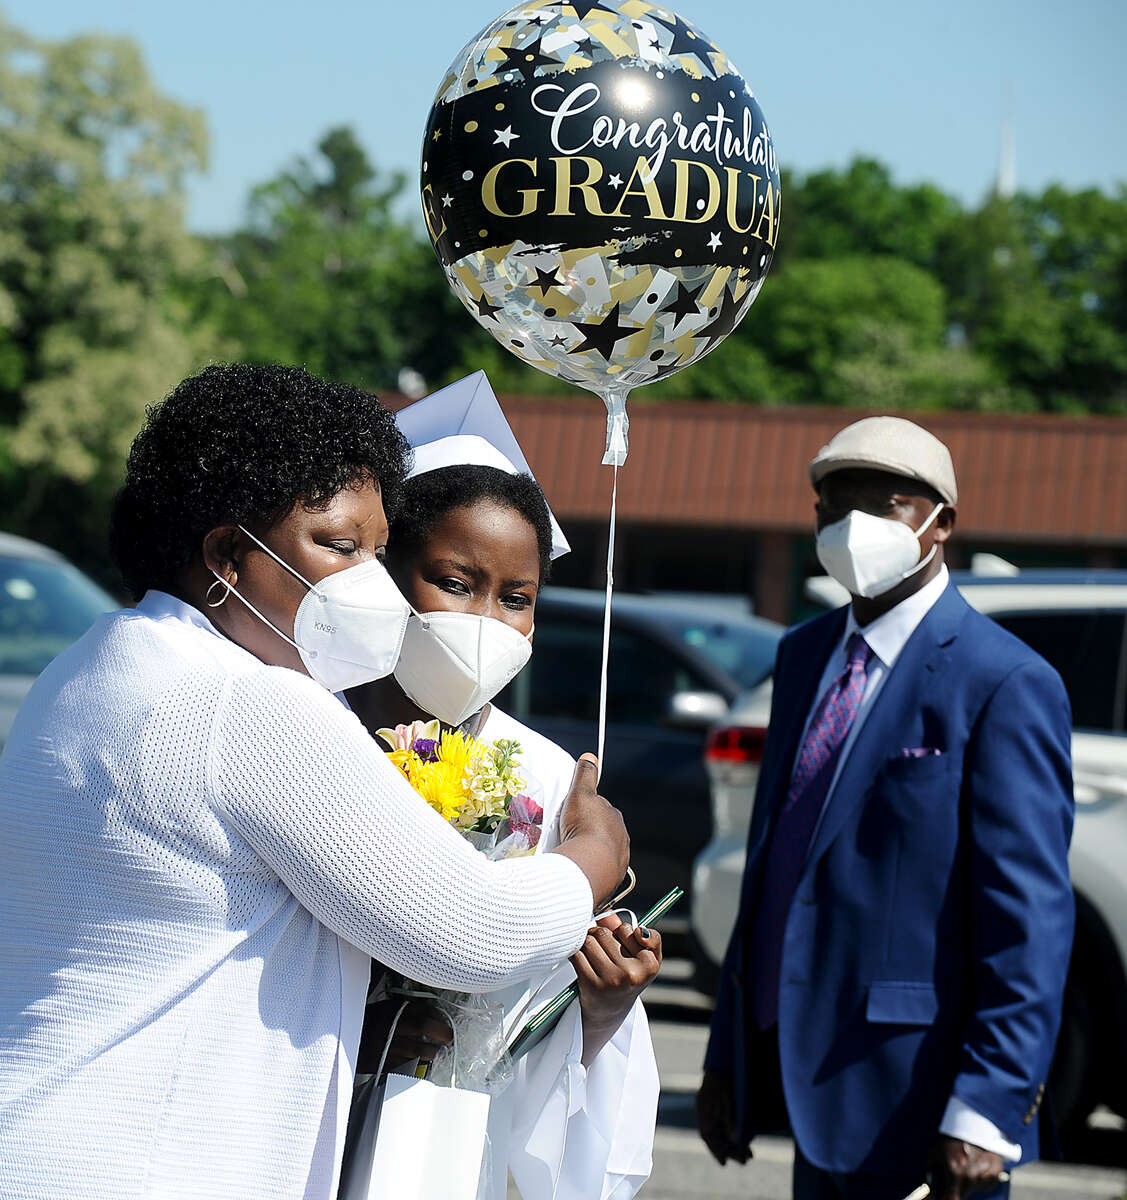 6/4/20-- FRAMINGHAM-- Saint Bridget School held a physically distanced outdoor graduation for 27 eighth grade graduates Thursday morning. Pictured, graduate Carolyn Nakawungu, of Framingham, is congratluated by mom Beatrice, with dad William in the background. [Daily News and Wicked Local Staff Photo/Art Illman]